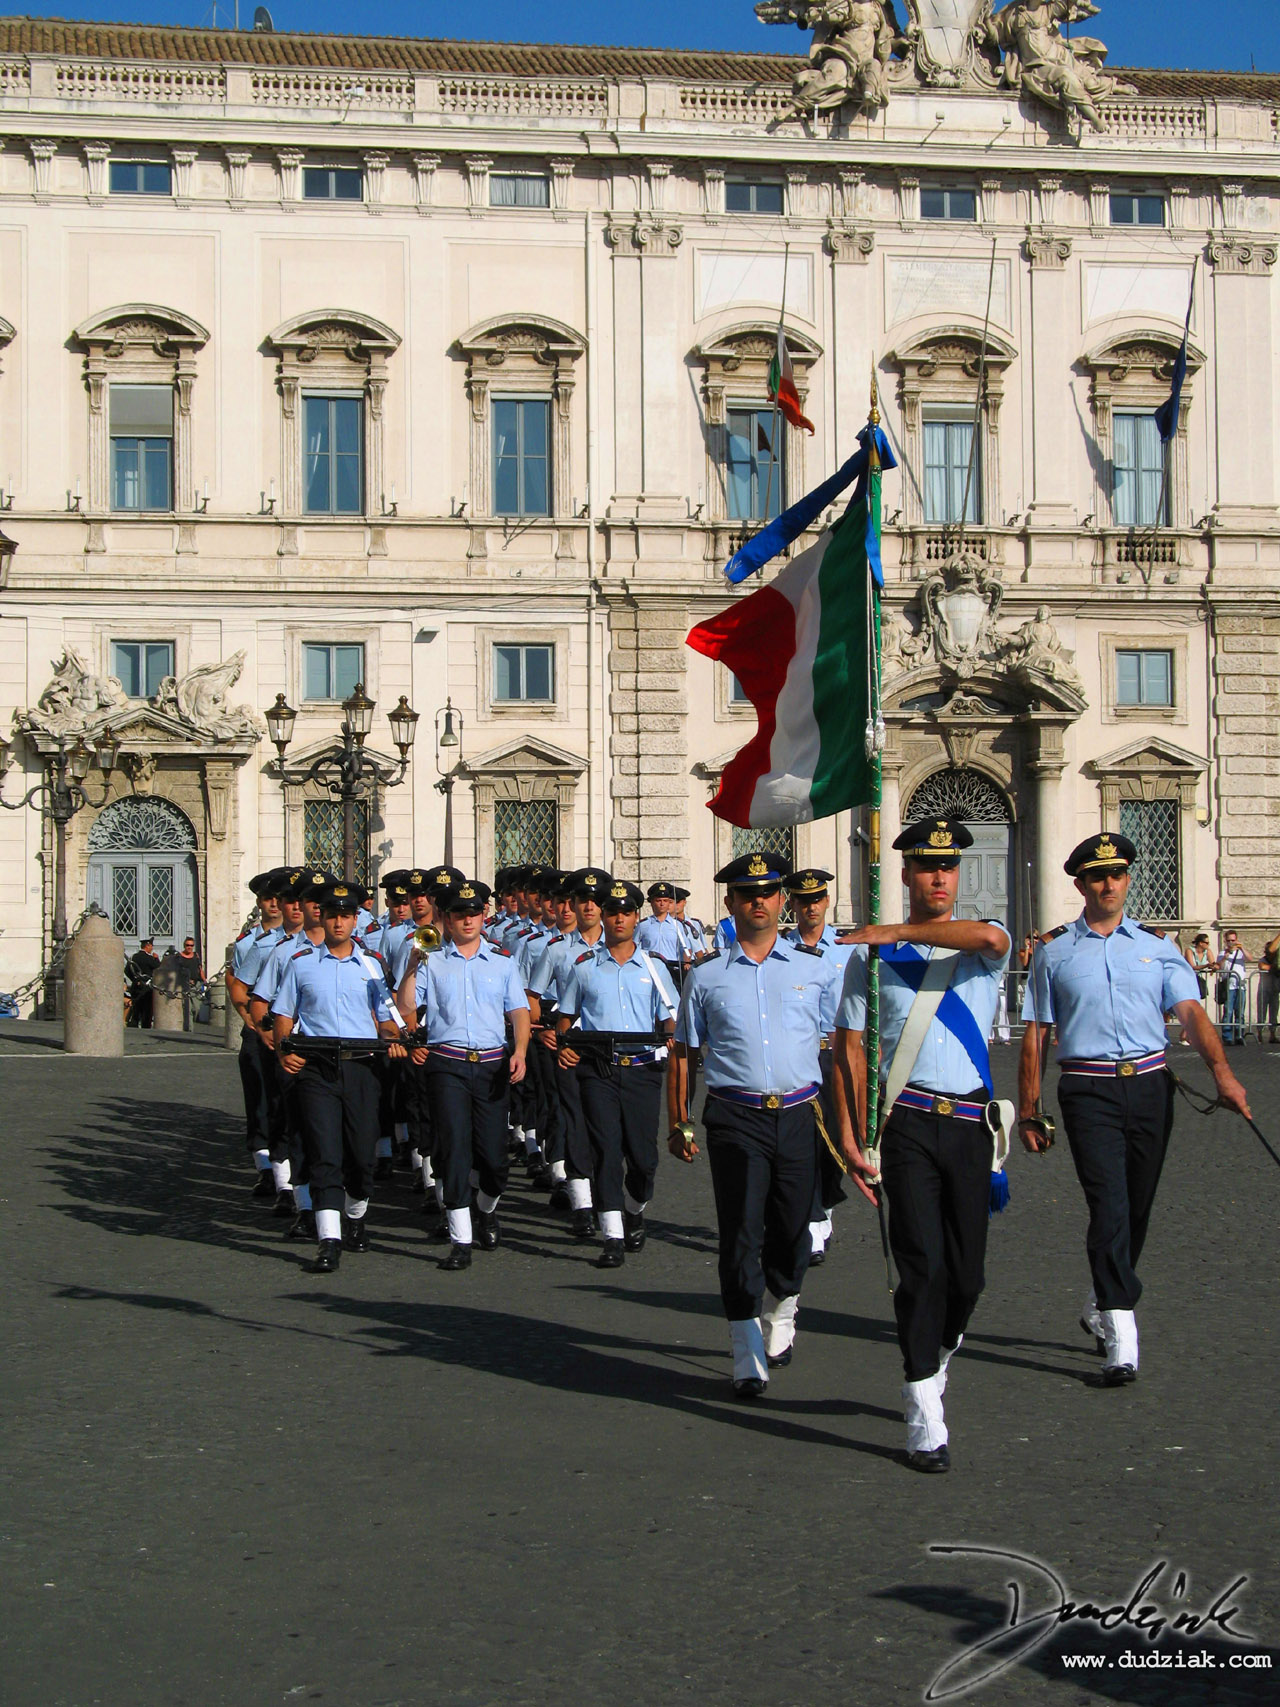 Roma,  Italian Soldiers,  soldiers,  Rome,  Italy,  changing of the guard,  Palazzo Quirinale